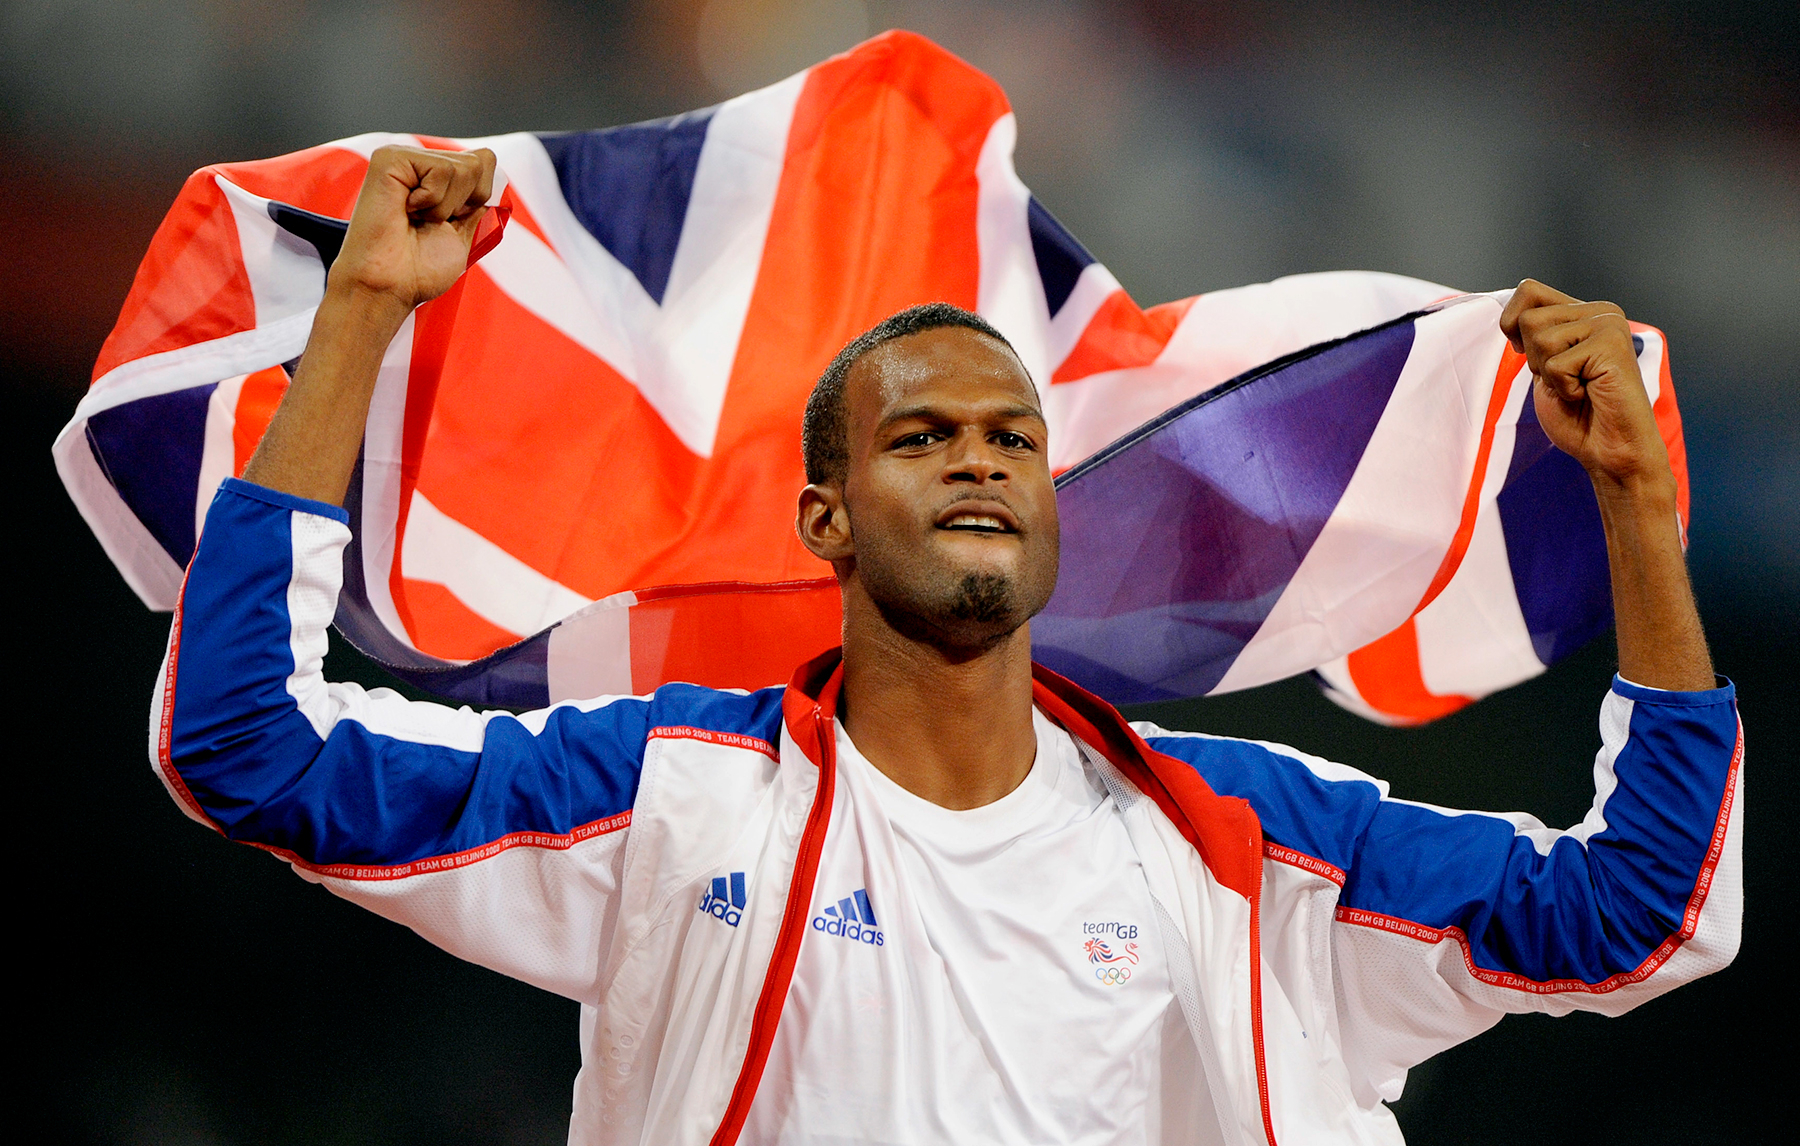 Britain's Germaine Mason celebrates winning the silver in the men's high jump final during the athletics competitions in the National Stadium at the Beijing 2008 Olympics in Beijing.